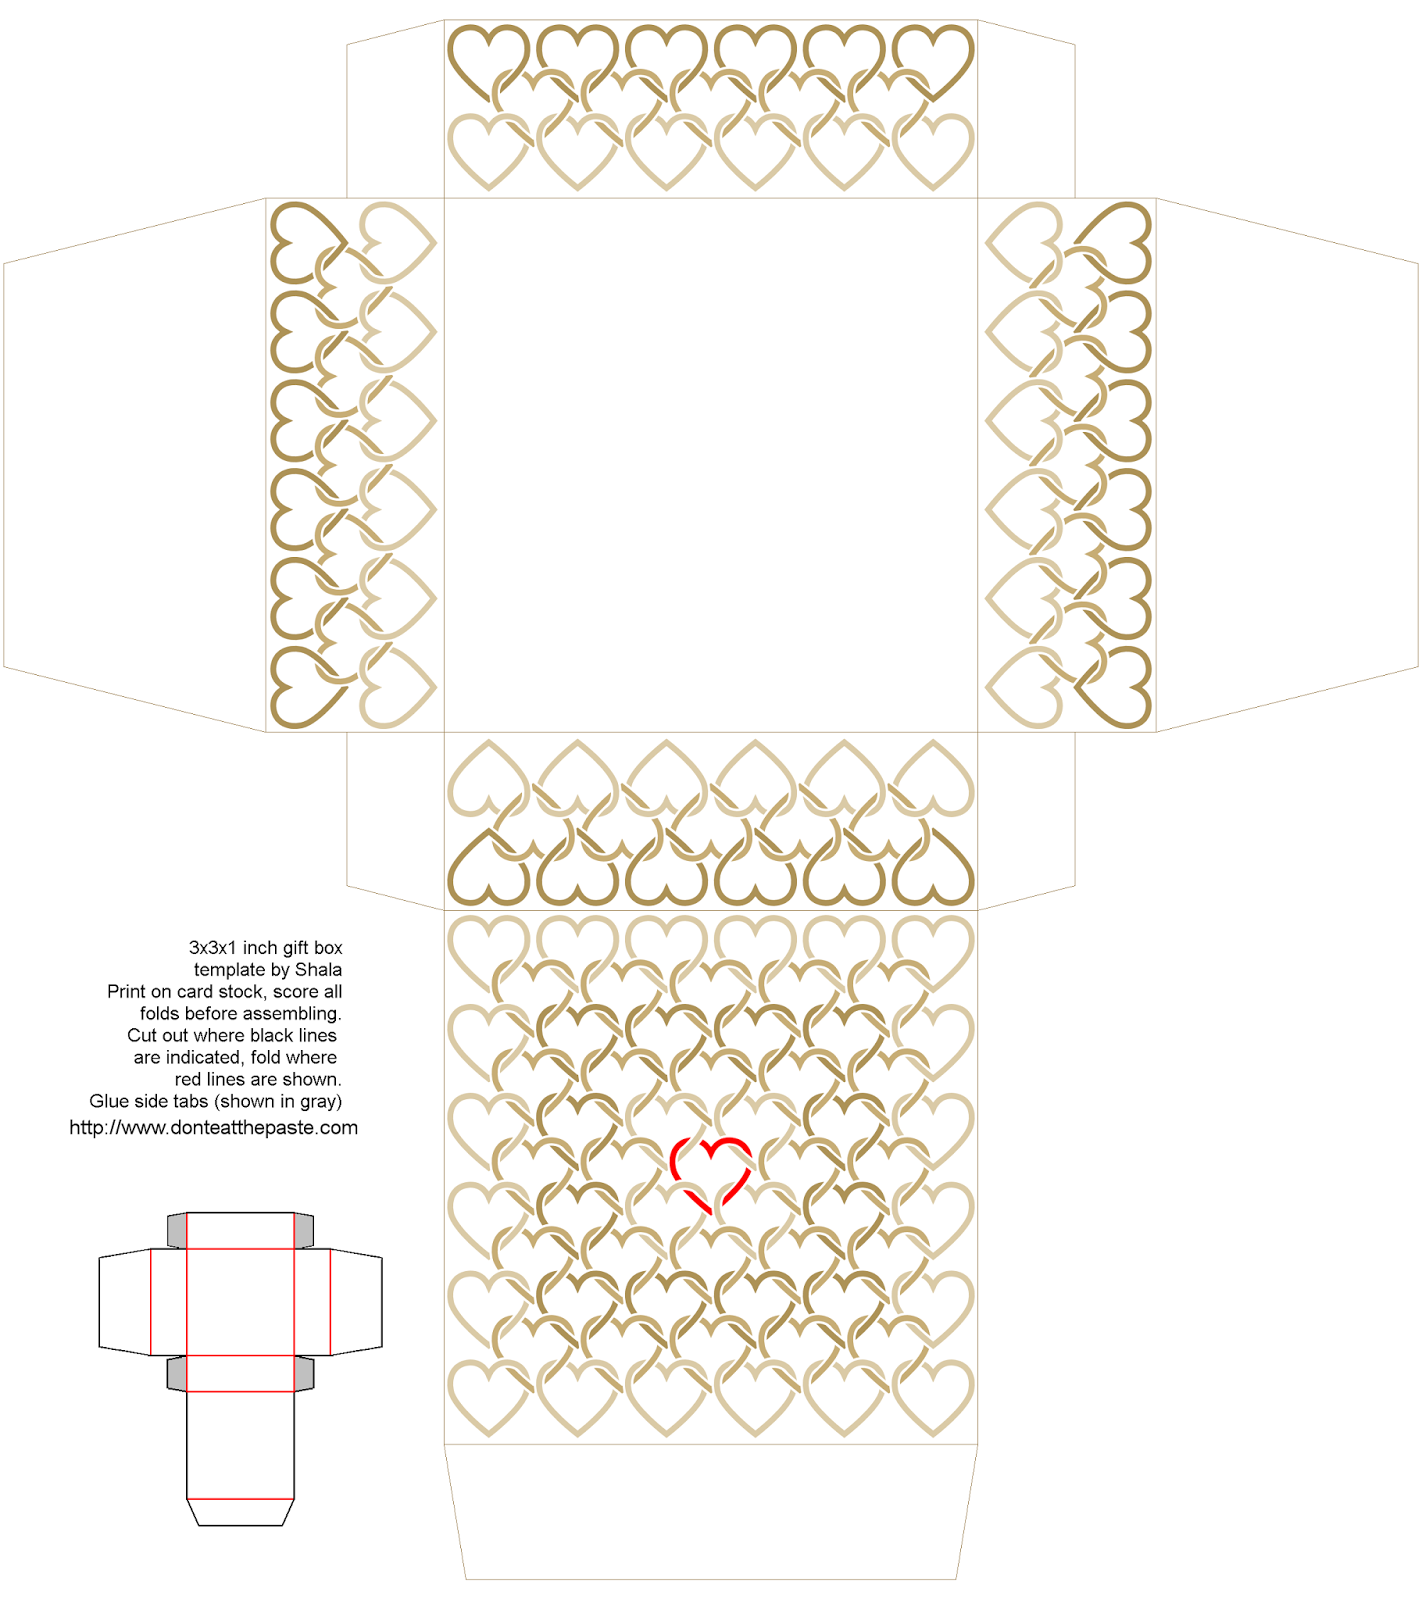 3x3x1 inch printable linked hearts box in tan and red- also available in a different size and in blue and orange